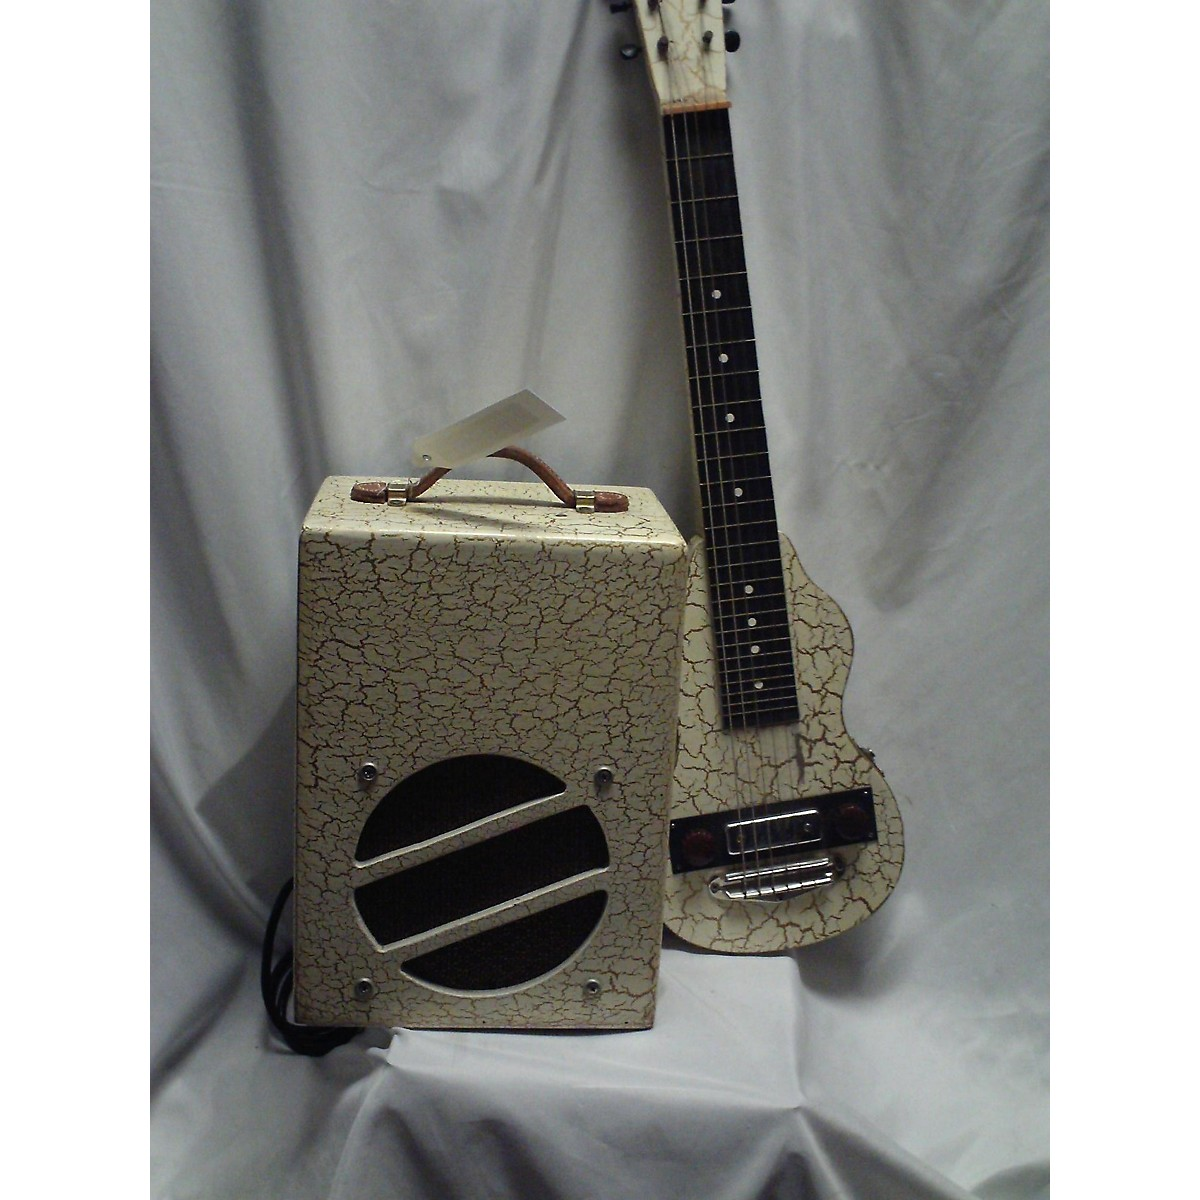 In Store Vintage Vintage 1940s EPITOME LAP STEEL WHITE CRACKLE FINISH Solid Body Electric Guitar